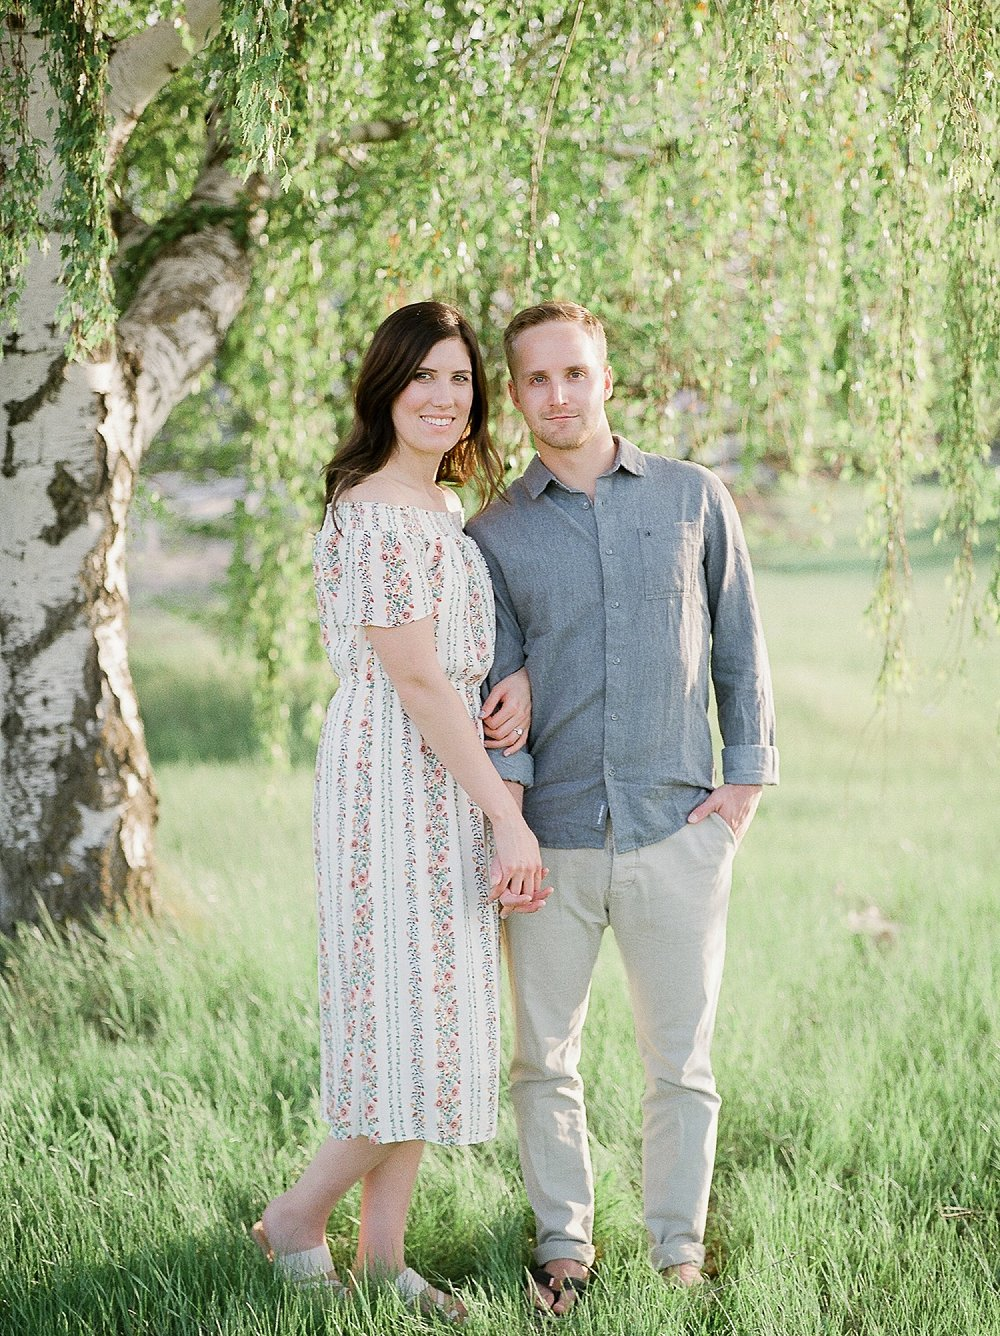 Winnipeg Wedding Photographer, Neutral Couples Outfits for Summer, Summer Outfit Ideas for Engagement Session, Manitoba Wedding Photographer